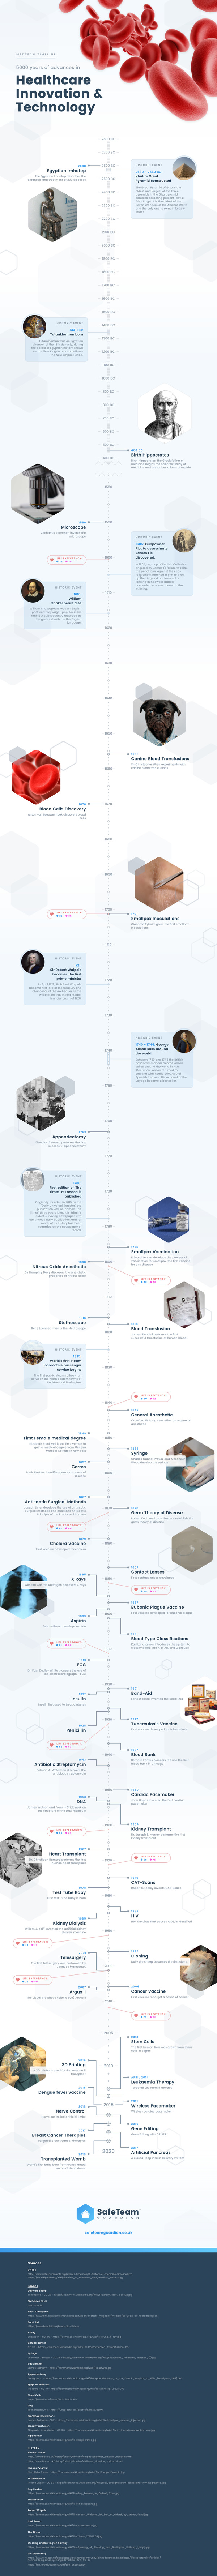 Medtech Timeline - 5000 Years of Advances in Healthcare